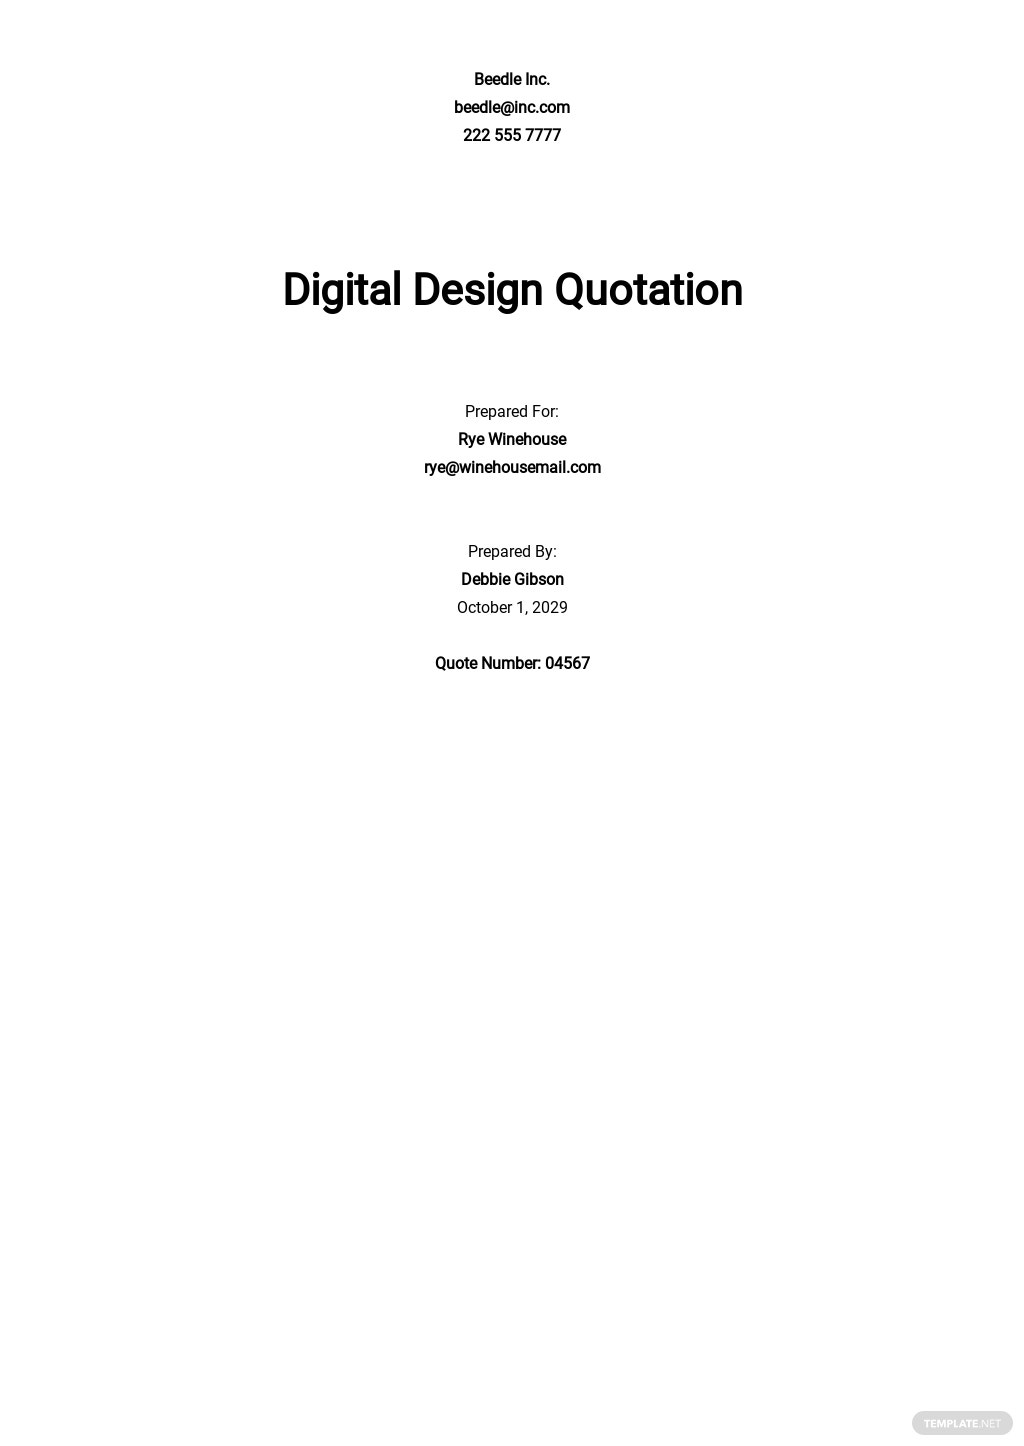 Business Quotation Sample Template